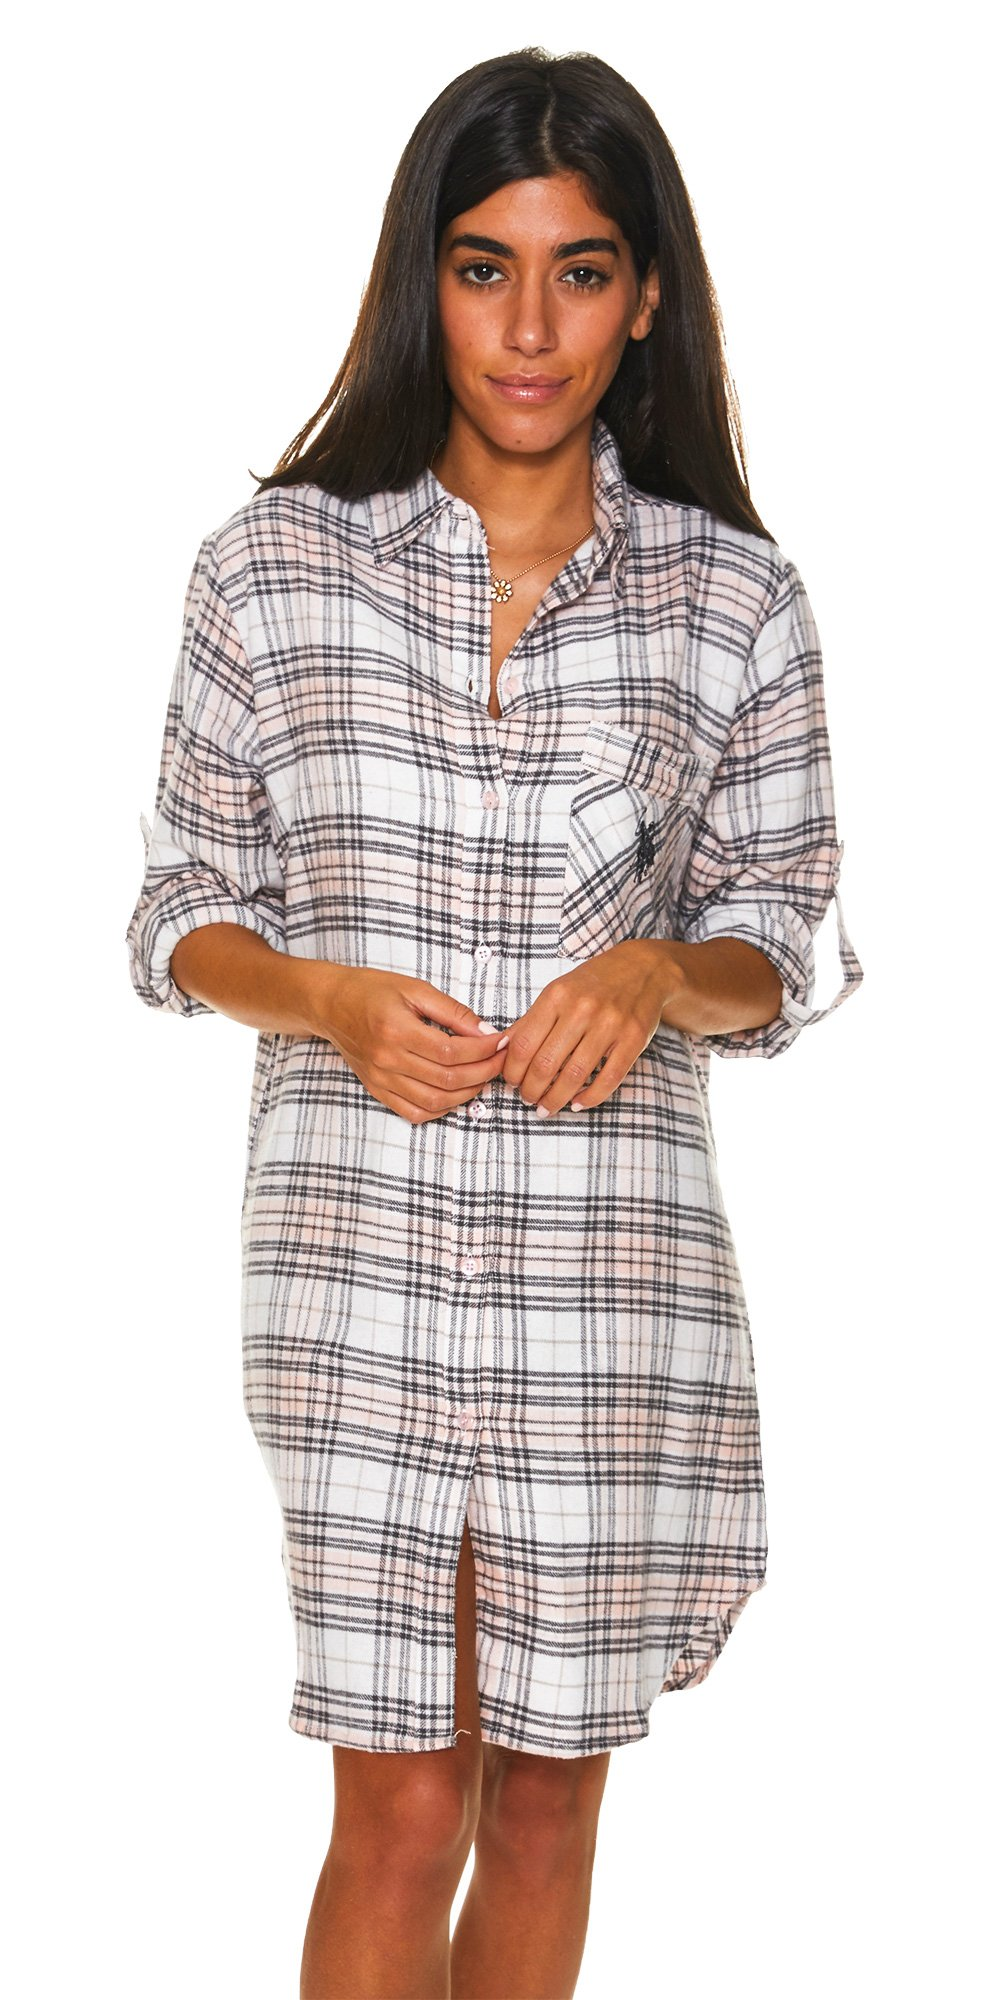 U.S. Polo Assn.. Womens Button Front Long Sleeve Cotton Pajama Sleep/Night Shirt White Large